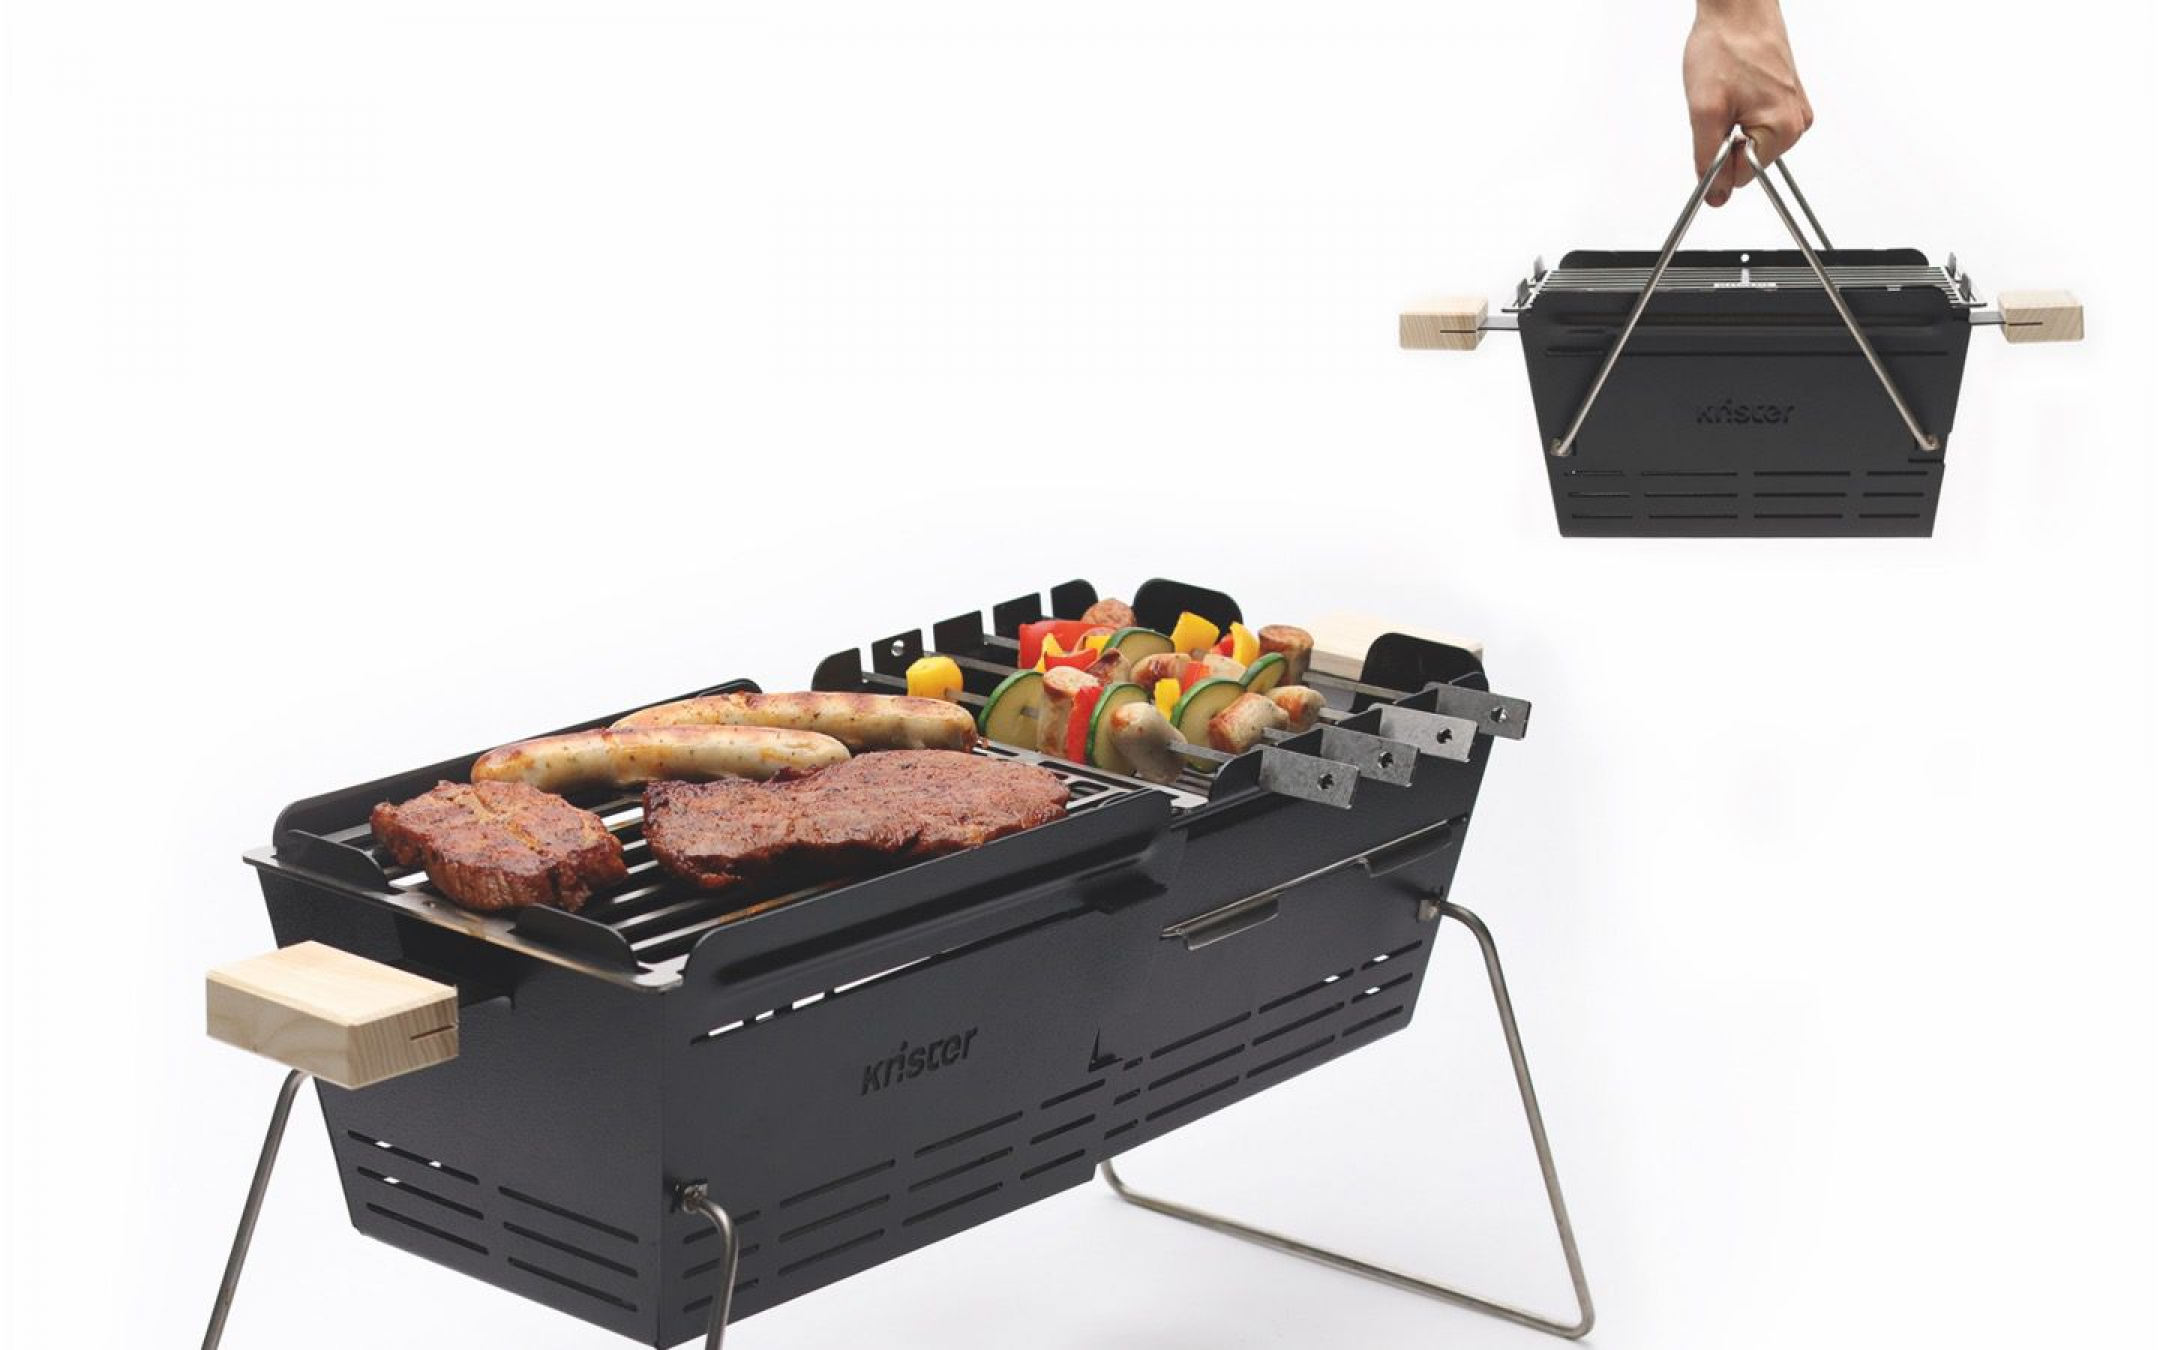 Knister-Grill